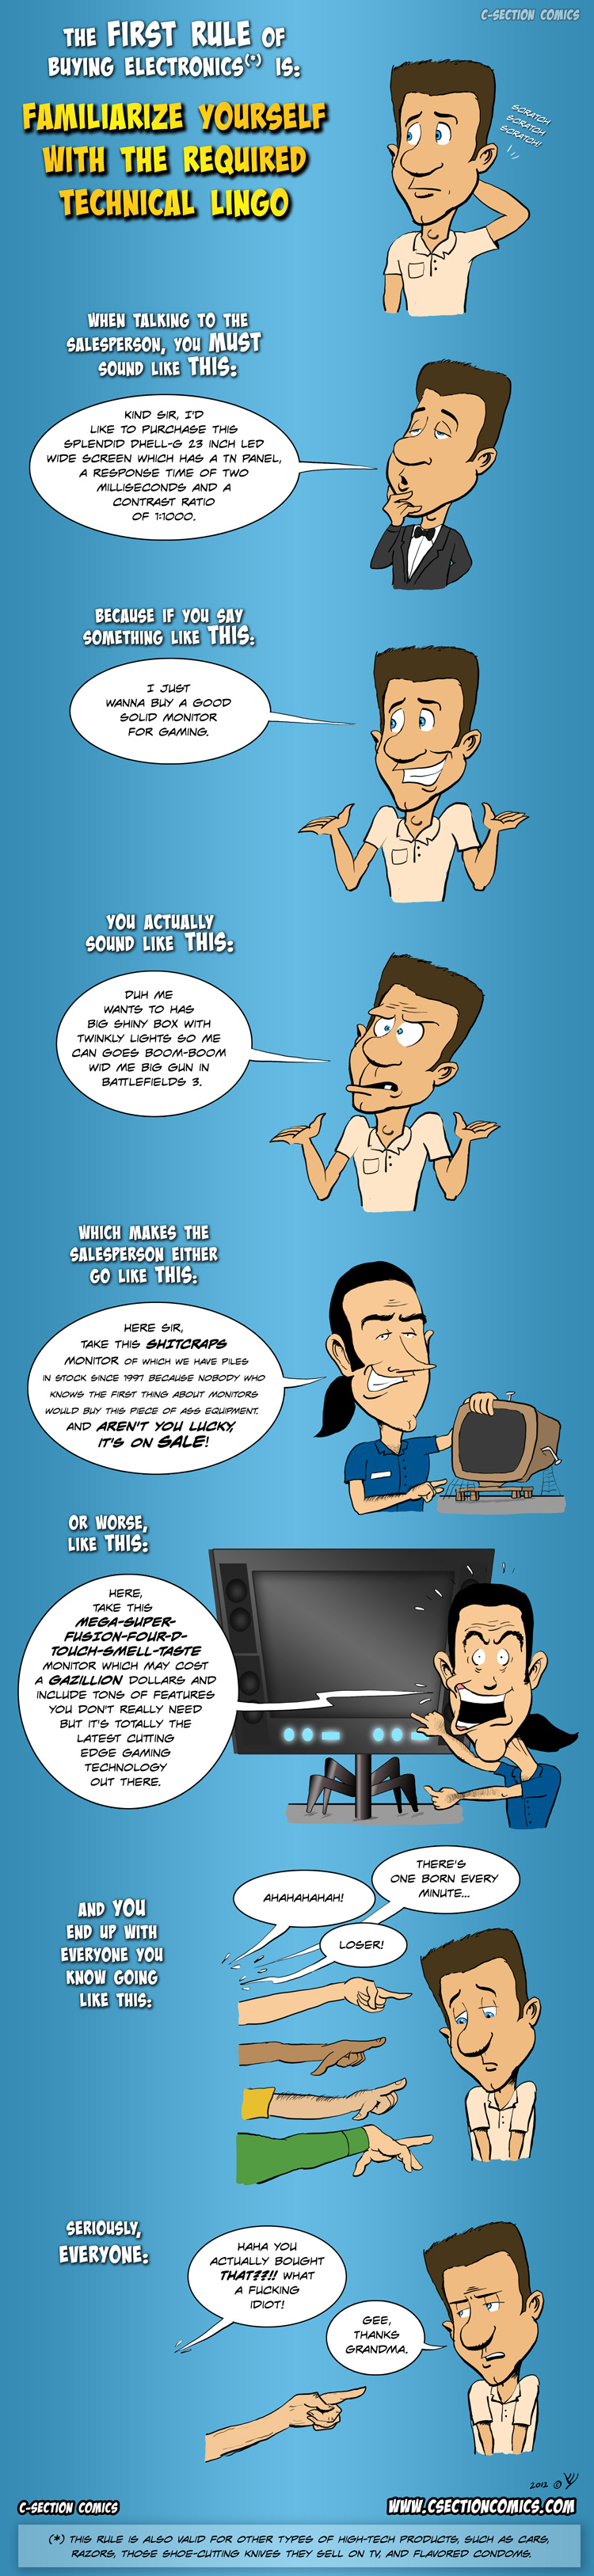 The First Rule of Buying Electronics